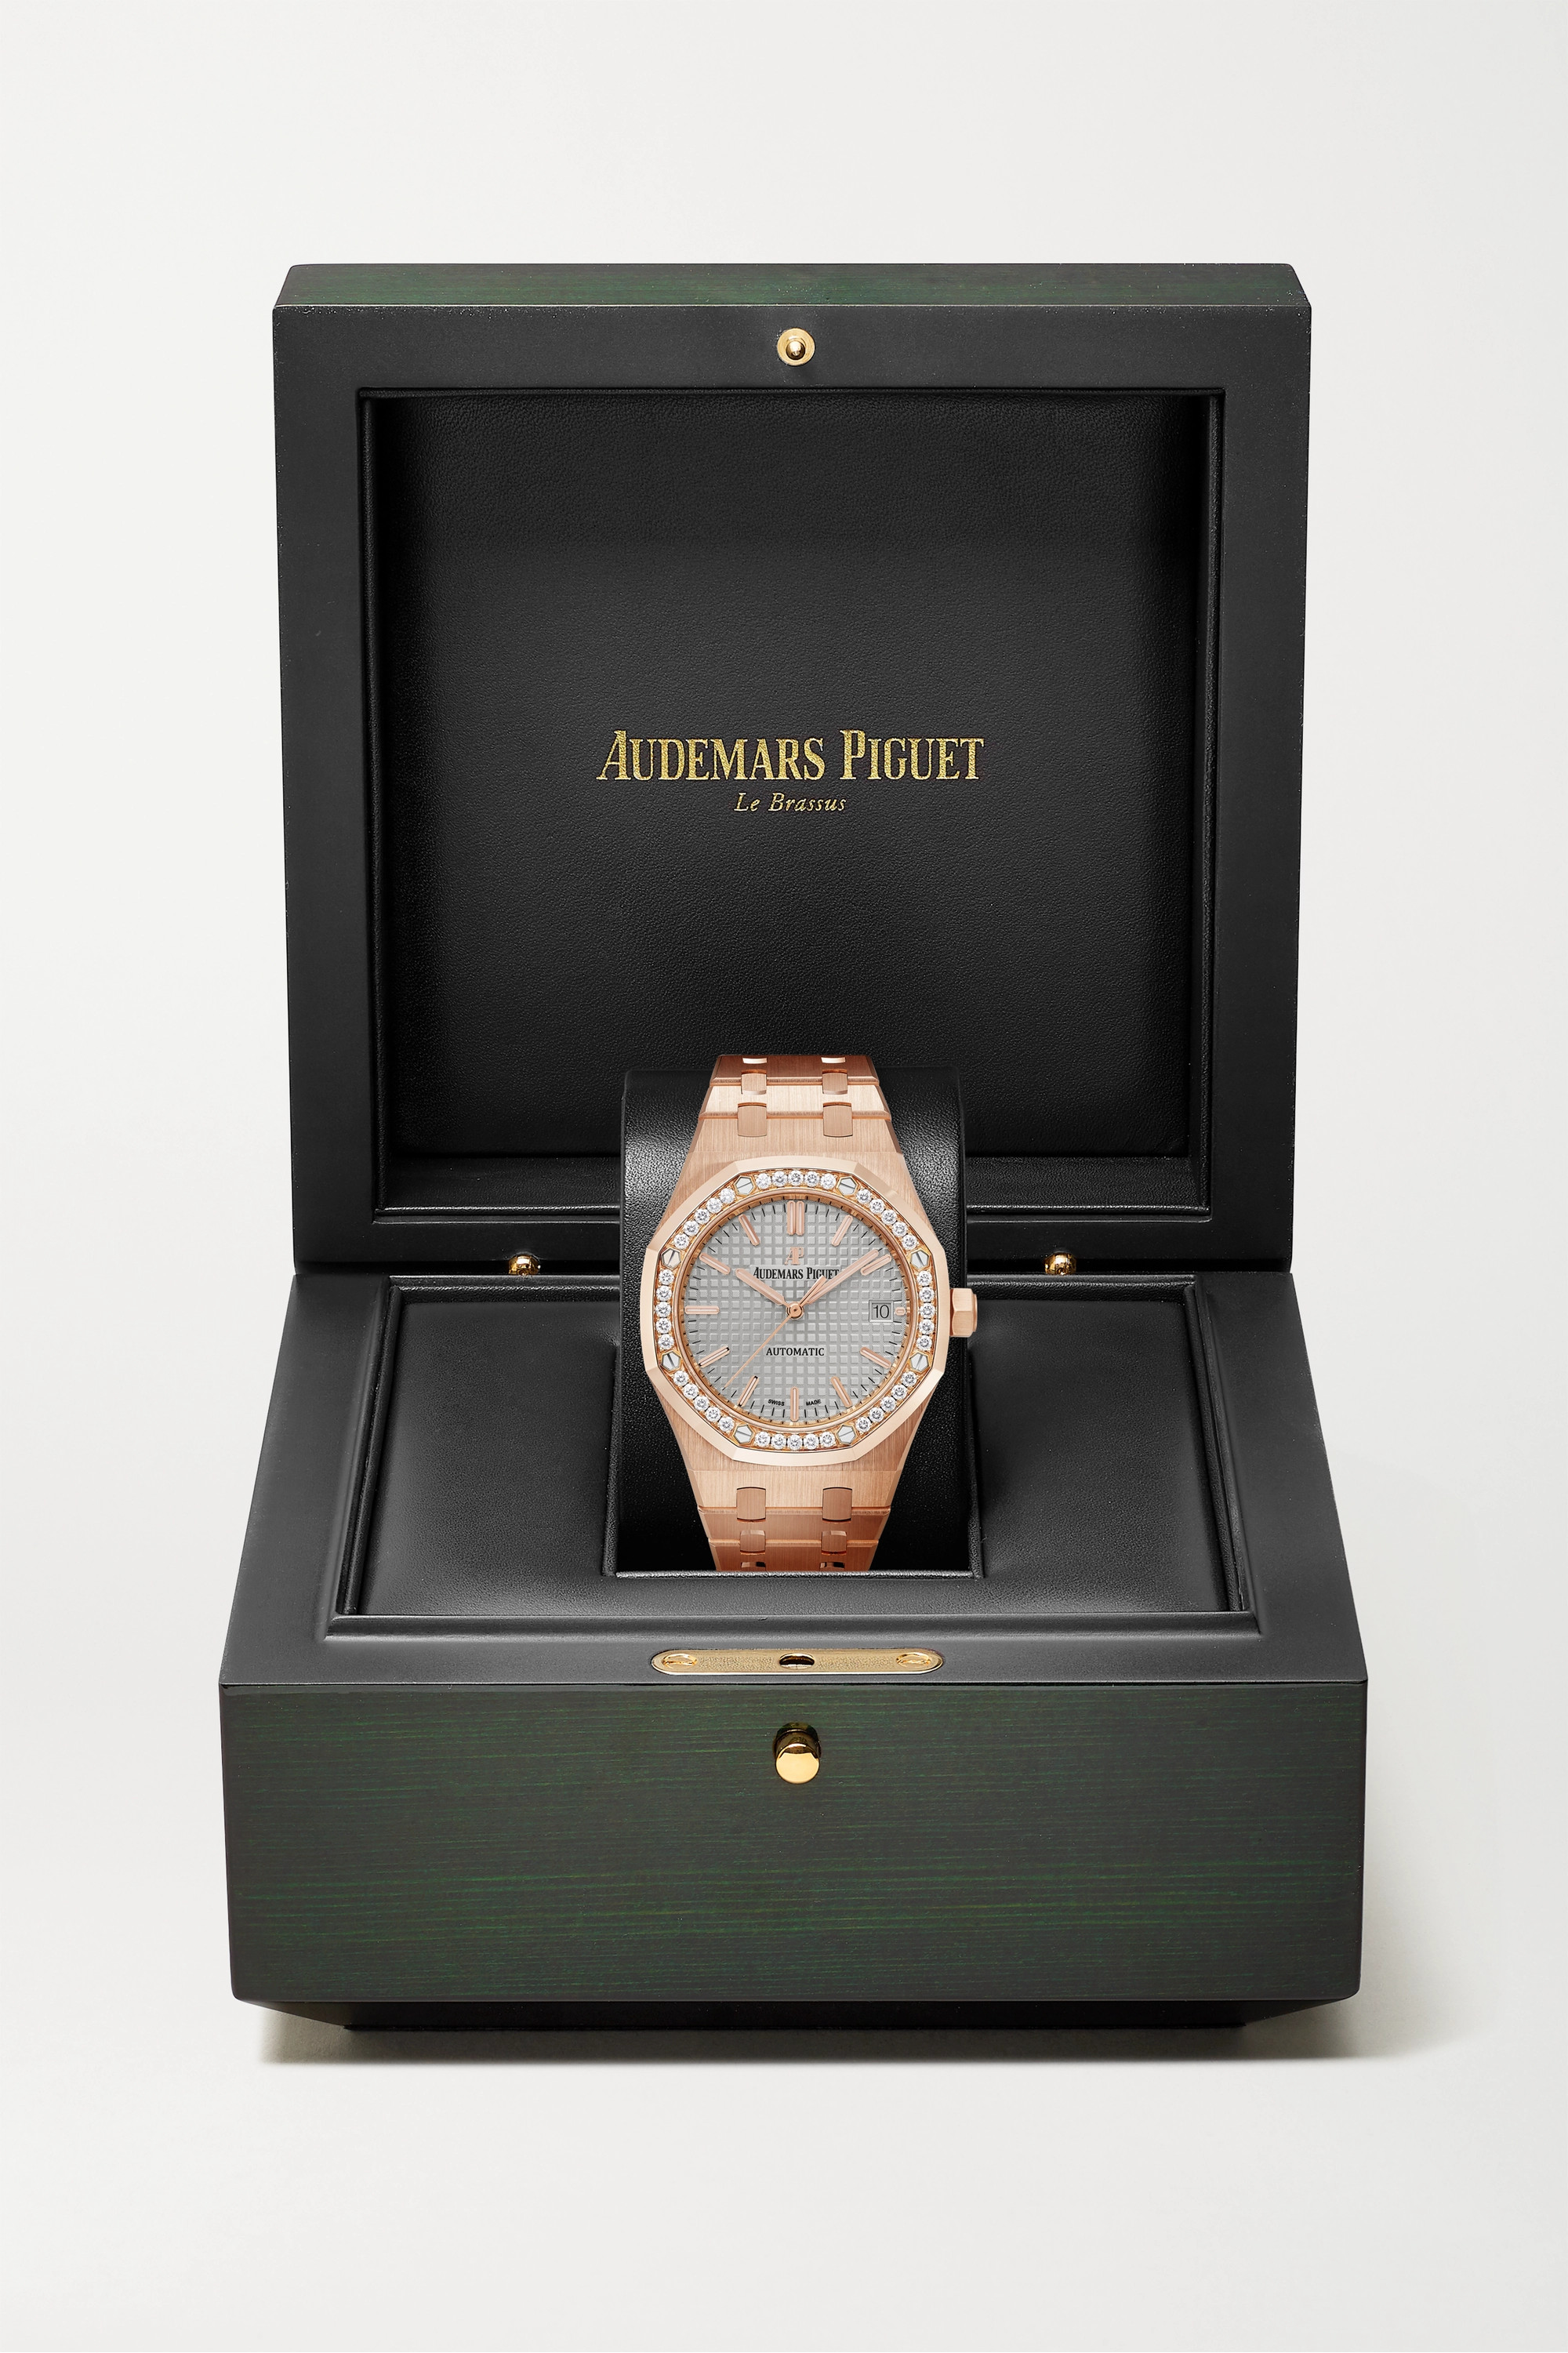 Audemars Piguet Royal Oak Automatic 37mm 18-karat pink gold and diamond watch